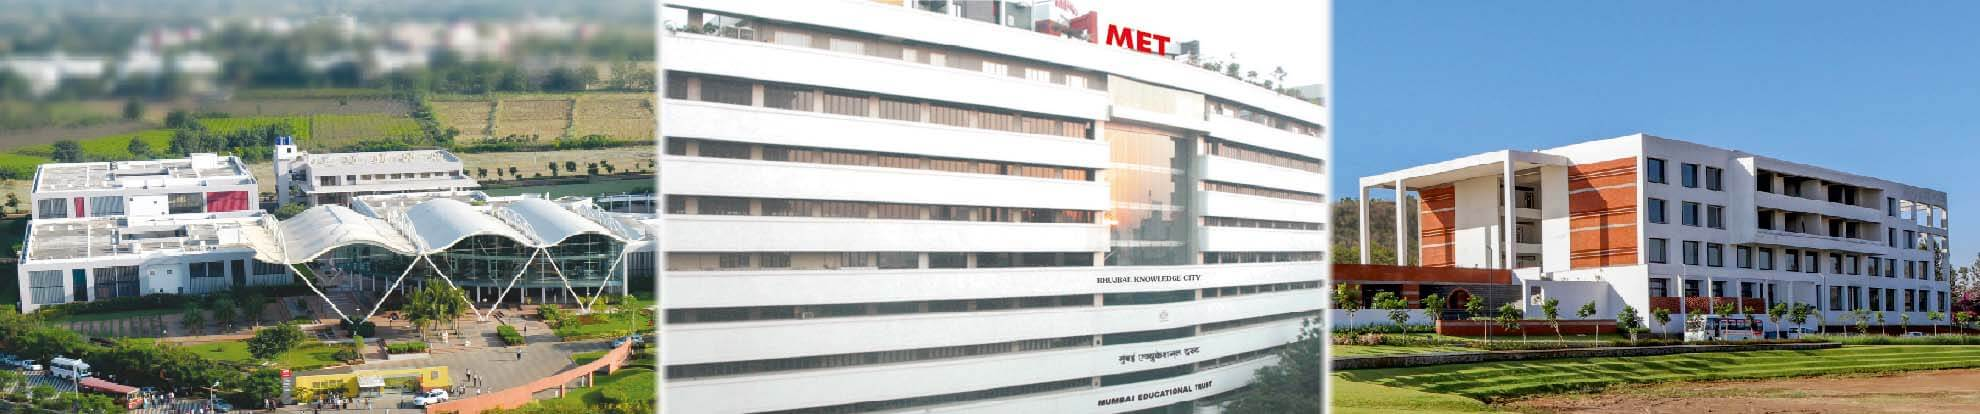 About MET